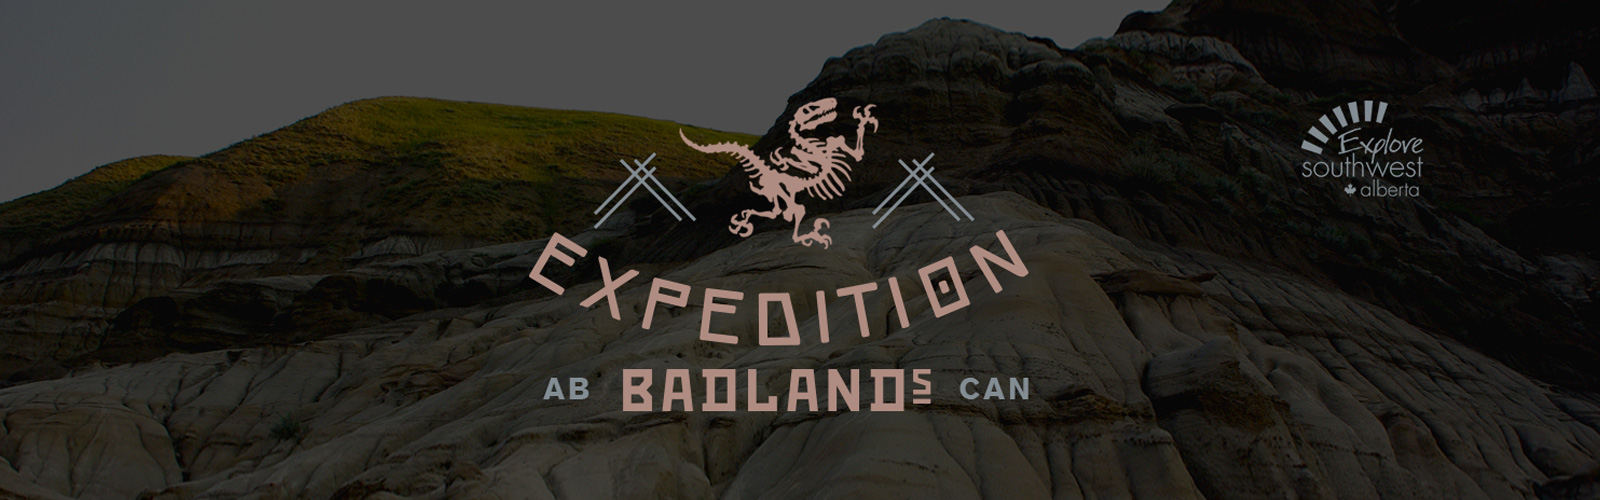 Expedition: Badlands